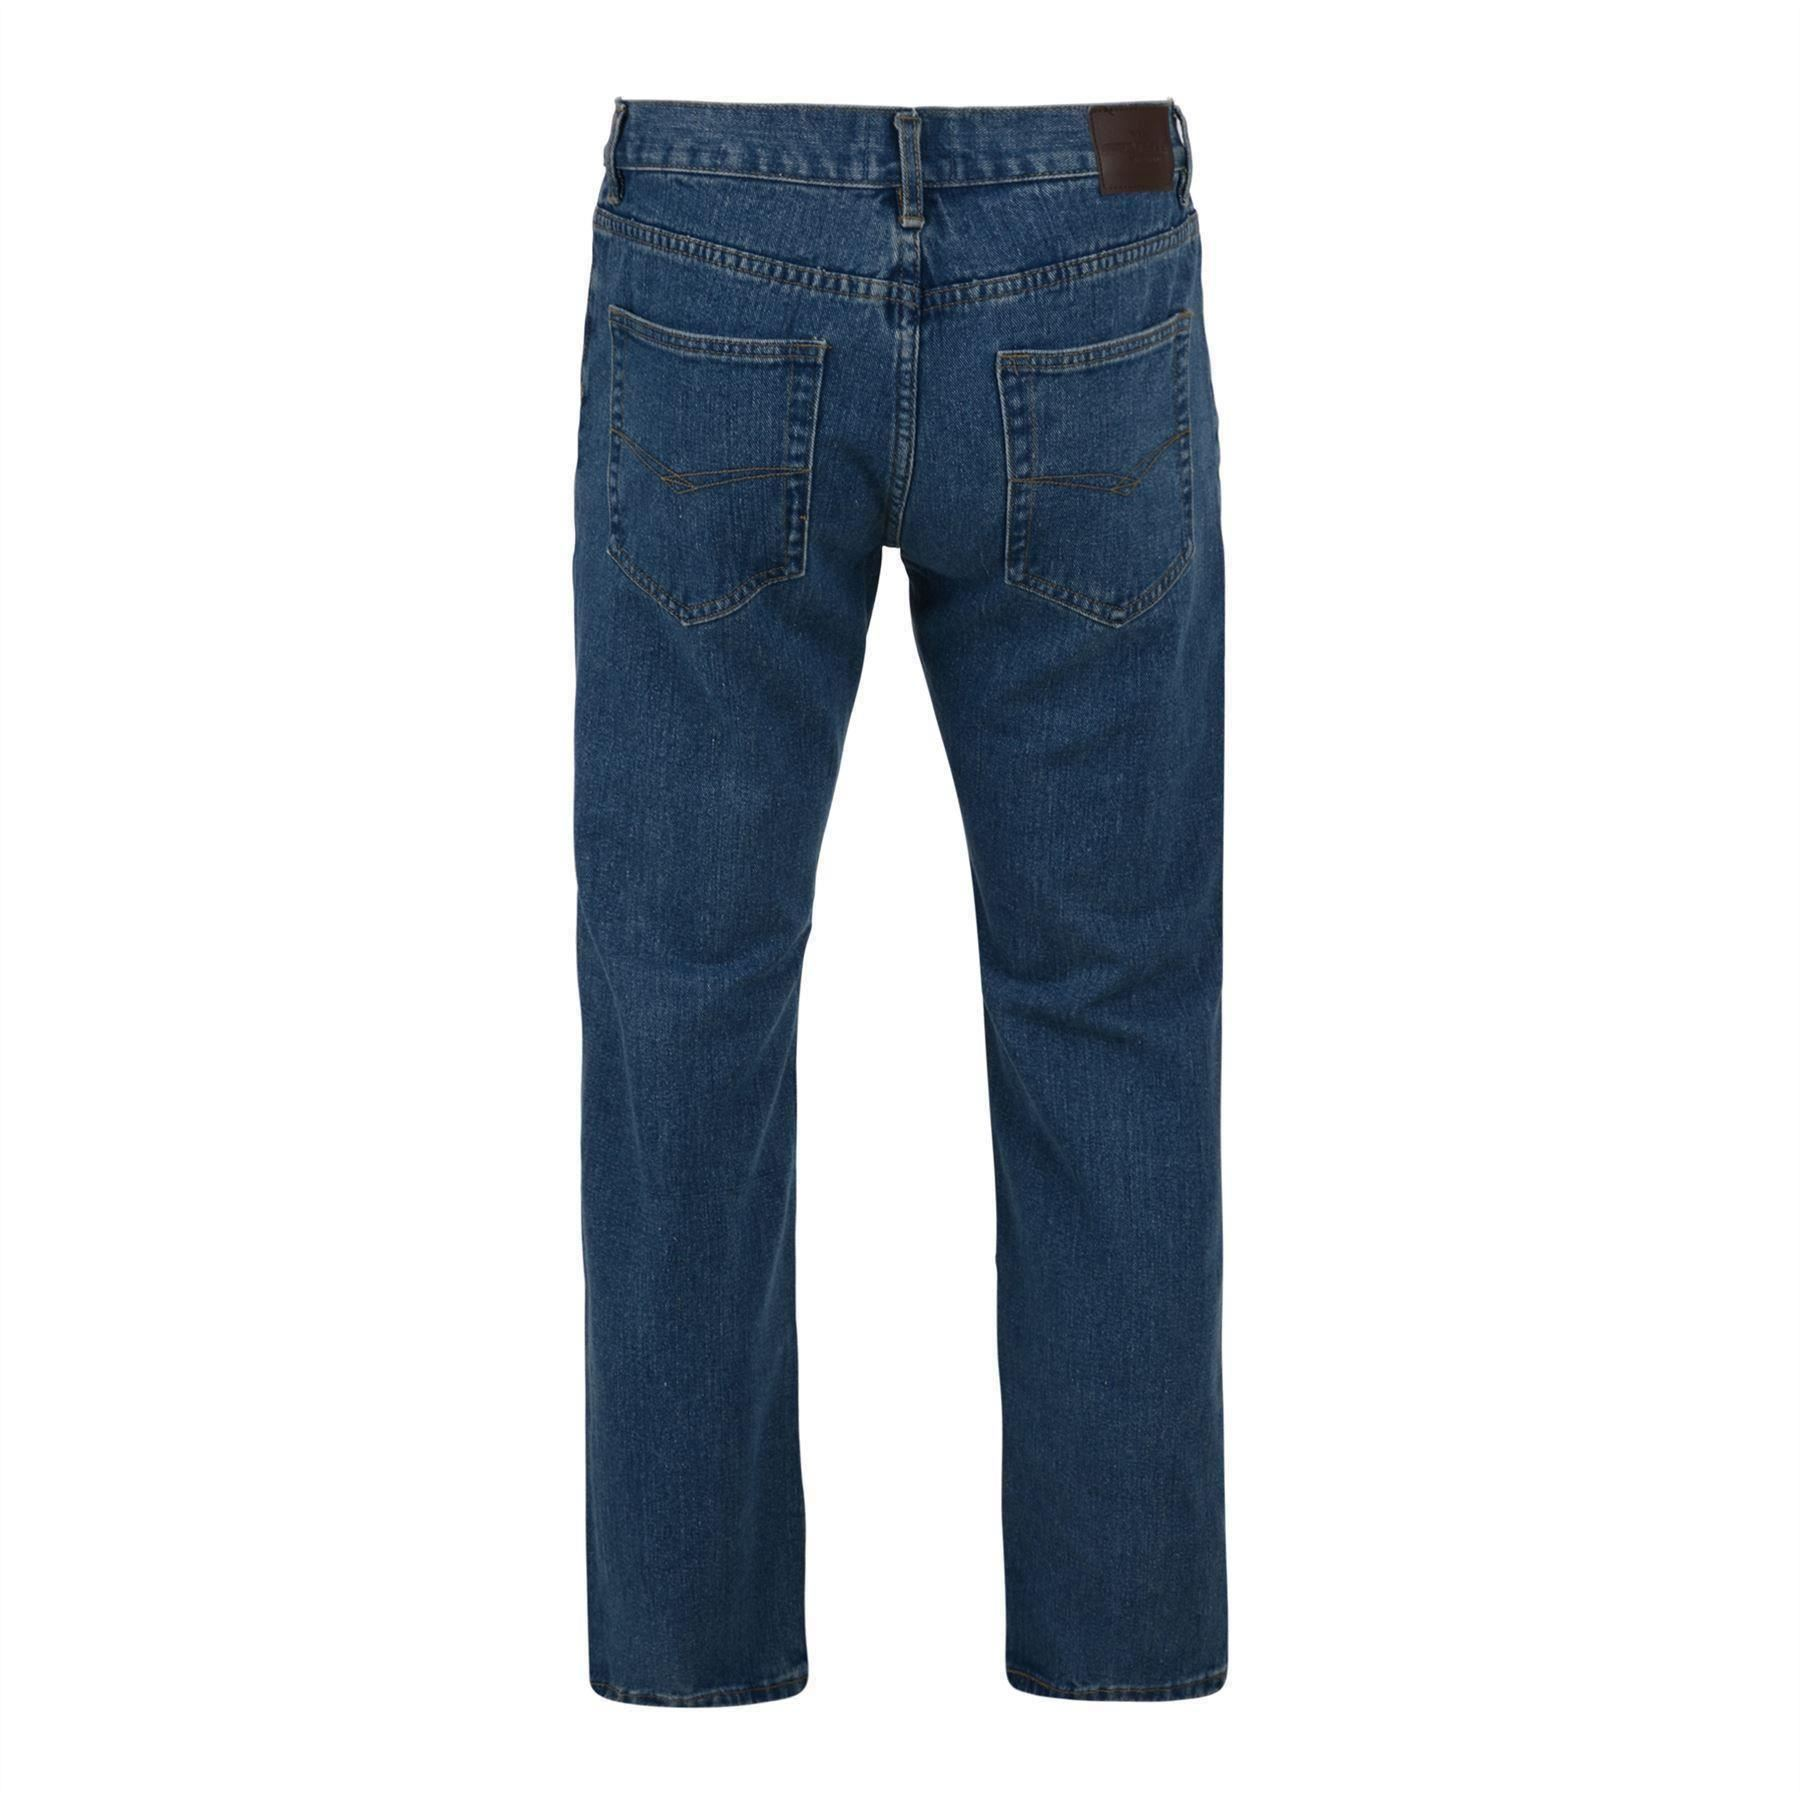 Take the Wrangler style you love with you to work. Original fit jeans featuring authentic five pocket styling. Prewashed cotton denim for comfortable feel and fit. It is HFPA compliant and ATPV calories/cm2.